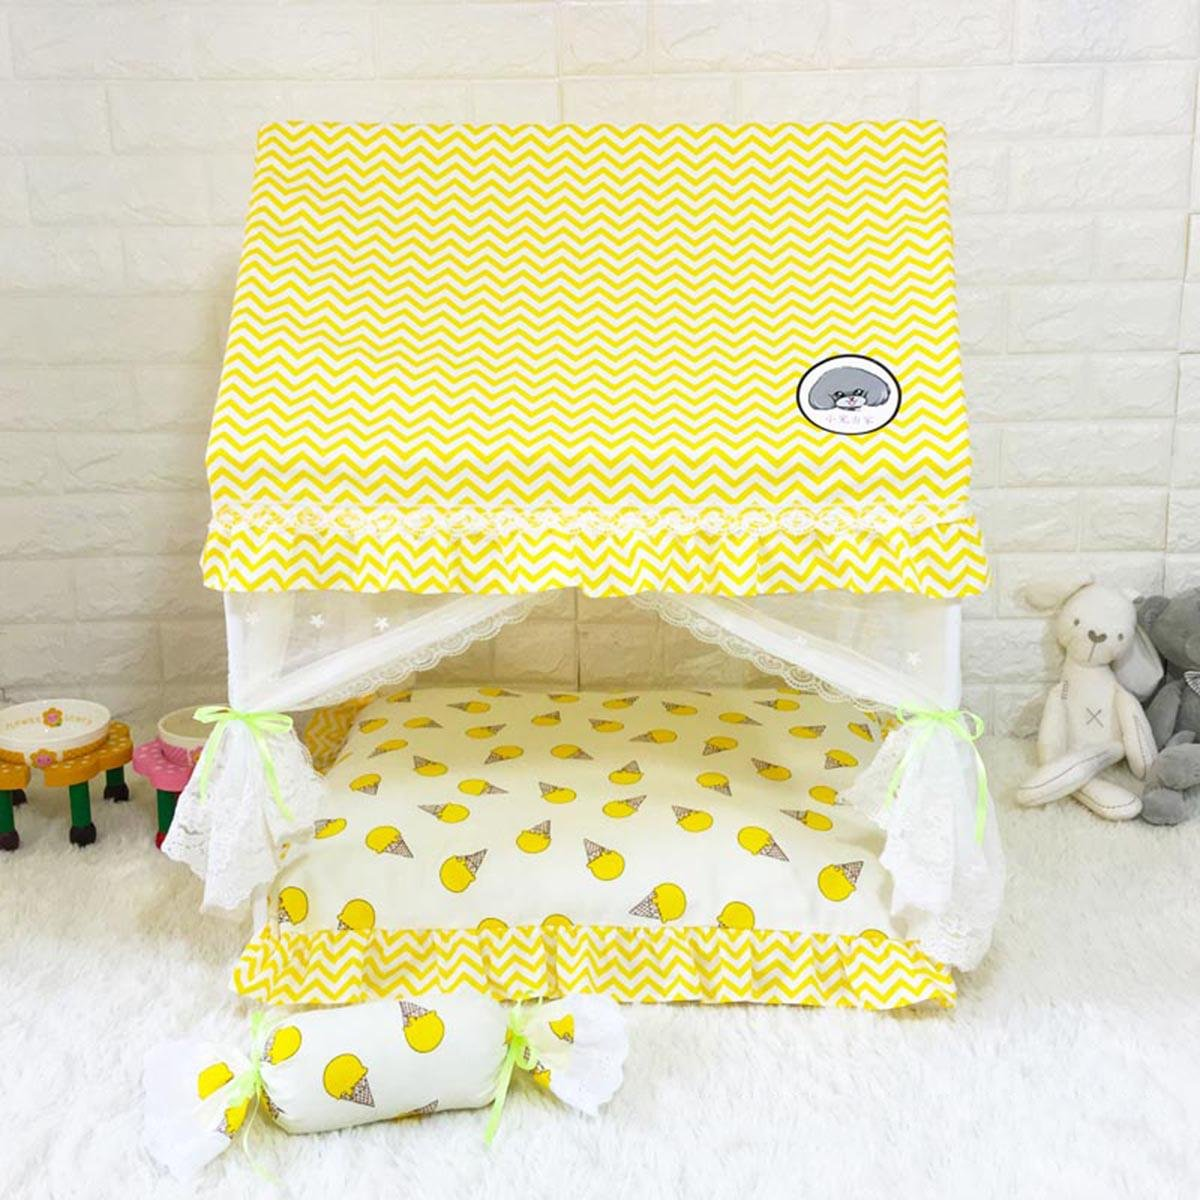 4 Mshanzhizui Pet tent Cat nest Washable Cat House Bomei Bichon Teddy dog Pet Princess Bed Closed type Kennel Pet mosquito net bed, C, XXL